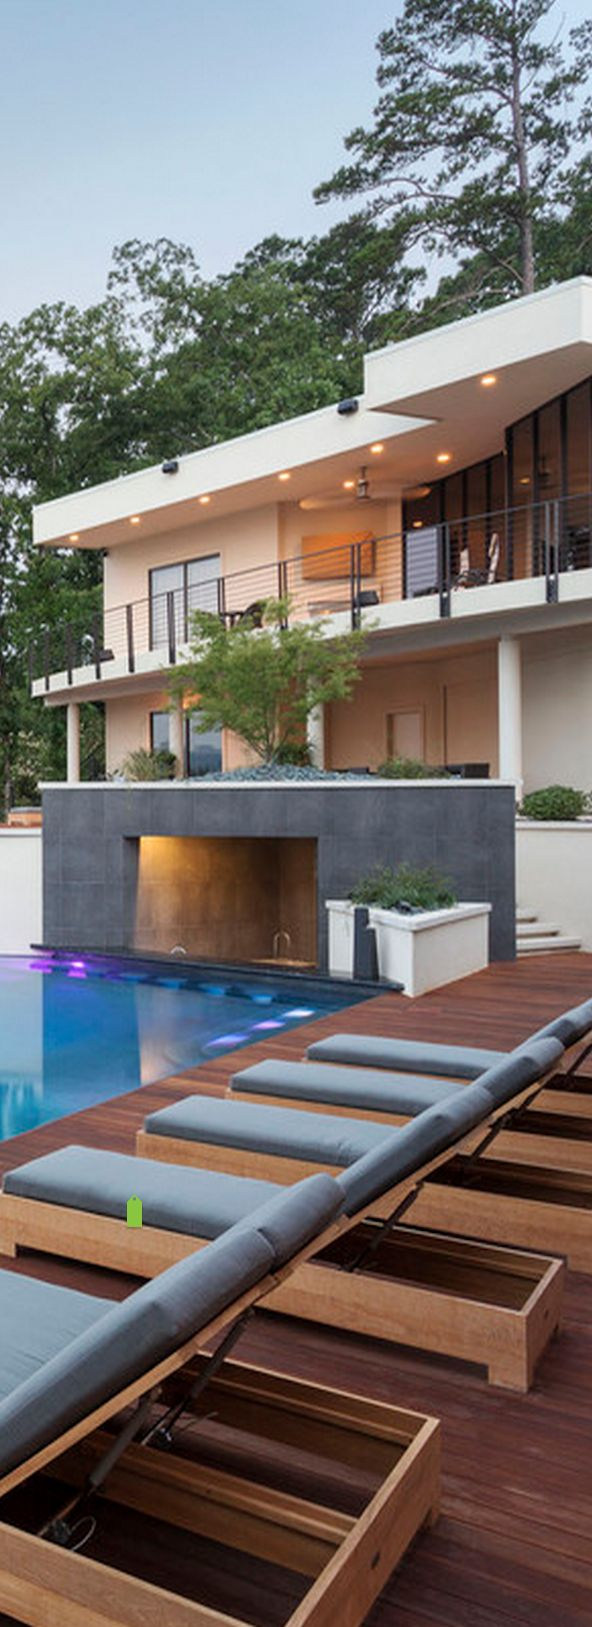 Apply our Faceal Oleo HD on wood and around your pool. Photo: This project was designed by Taggart Architecture